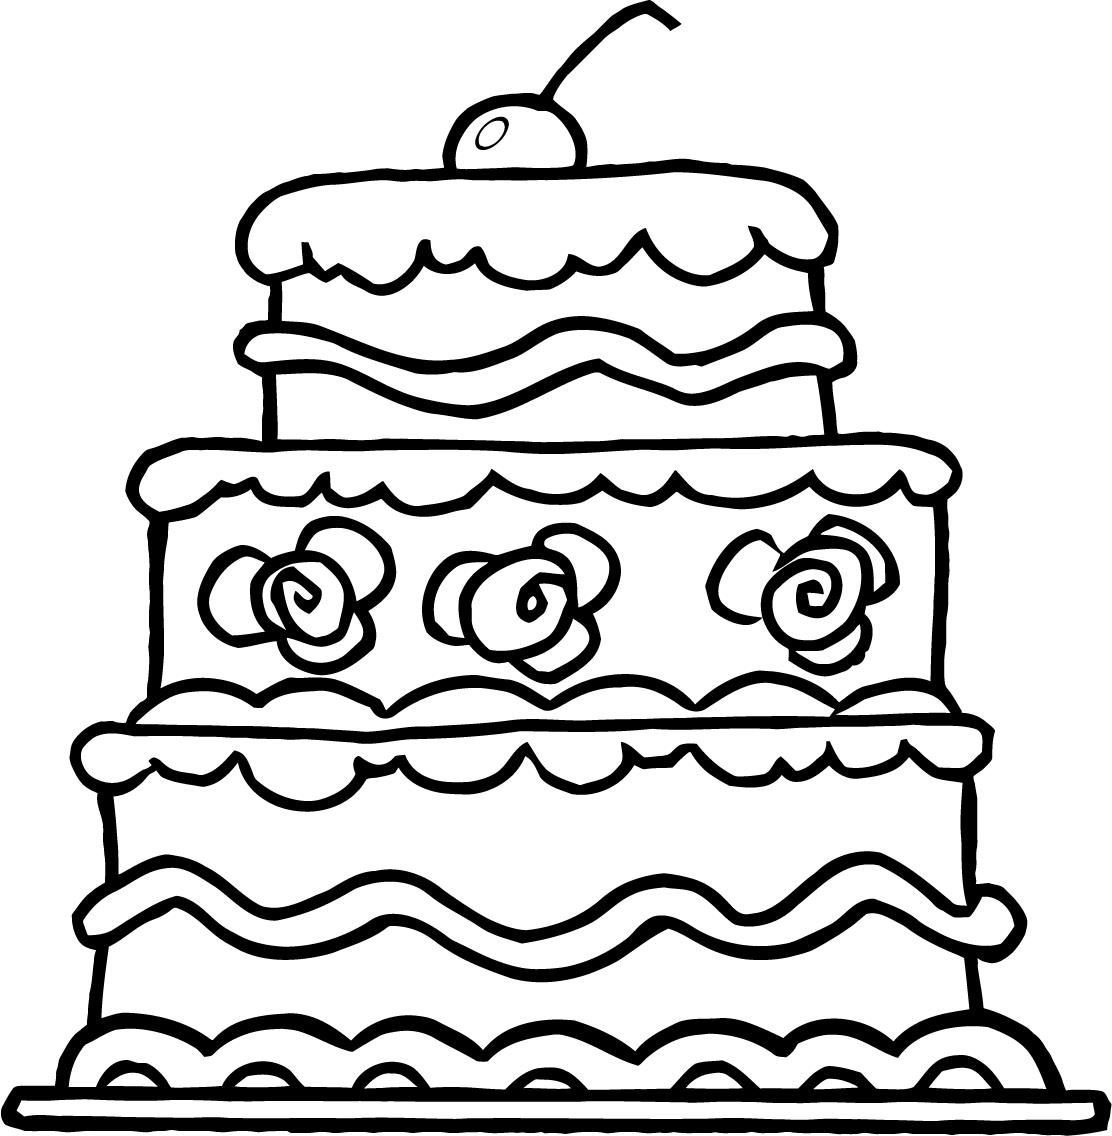 lol cake coloring pages flutter cake from shopkins coloring pages free printable cake lol pages coloring